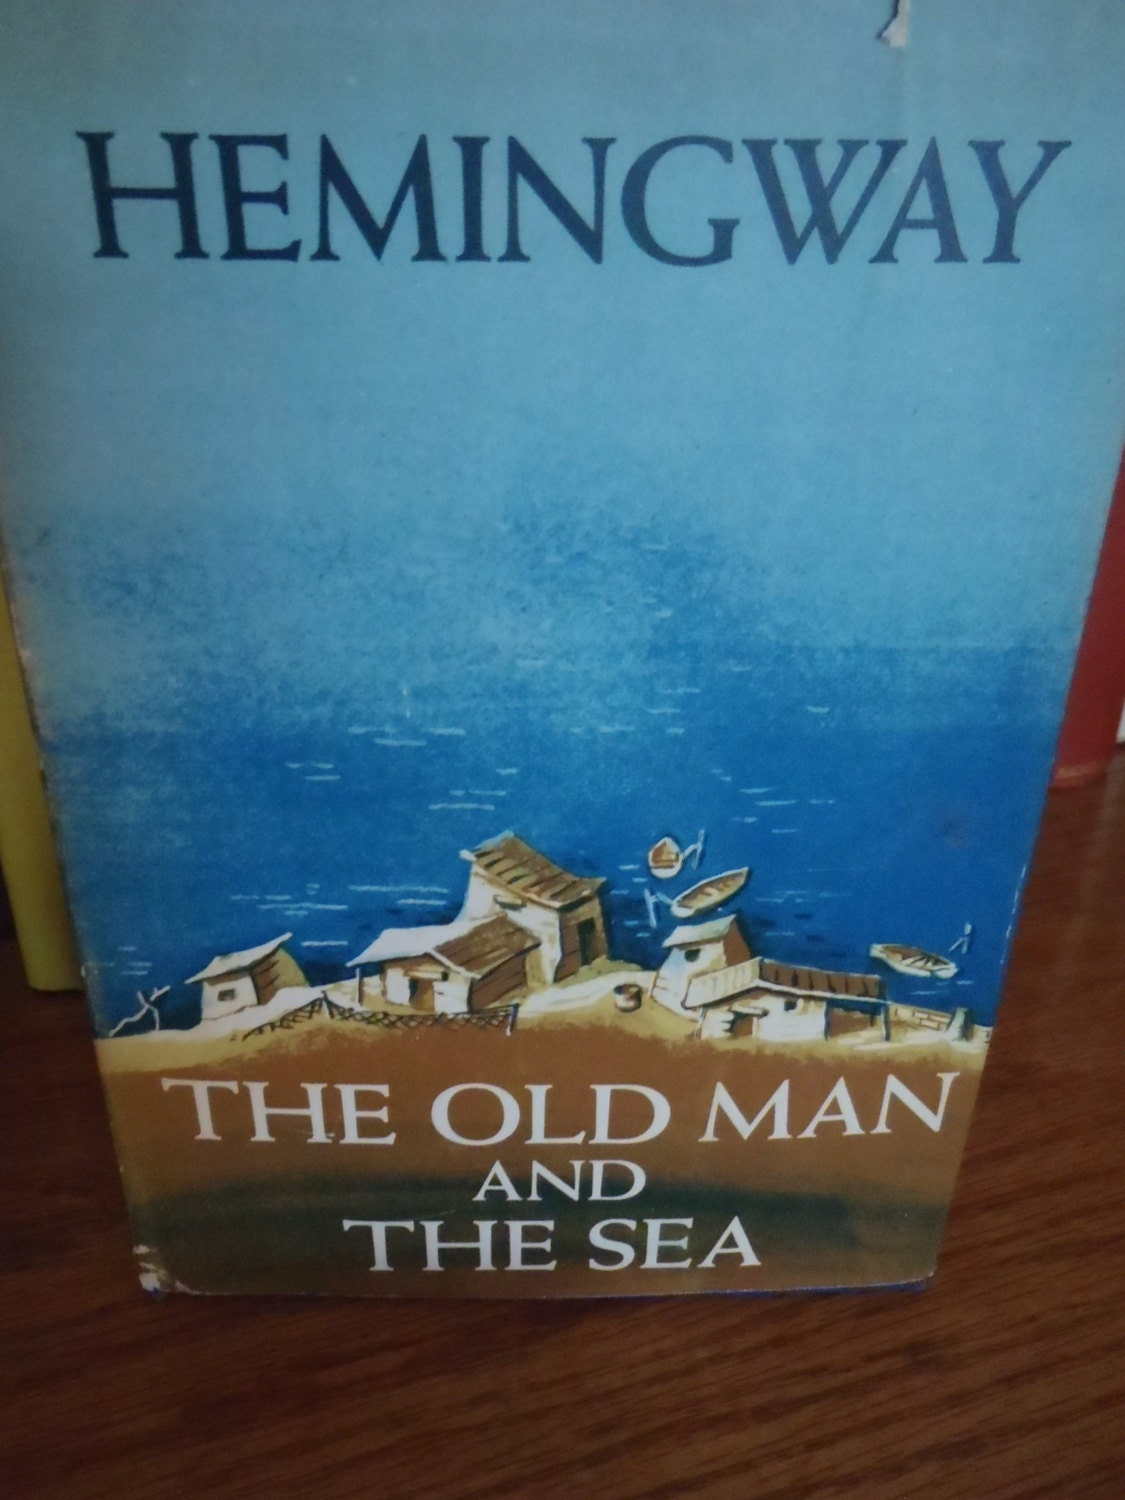 literary analysis of the novel the old man and the sea by ernest hemingway Analysis of the novel «the old man and the sea» by ernest hemingway: problems, symbolism, biblical reminiscence, the character of the old man.